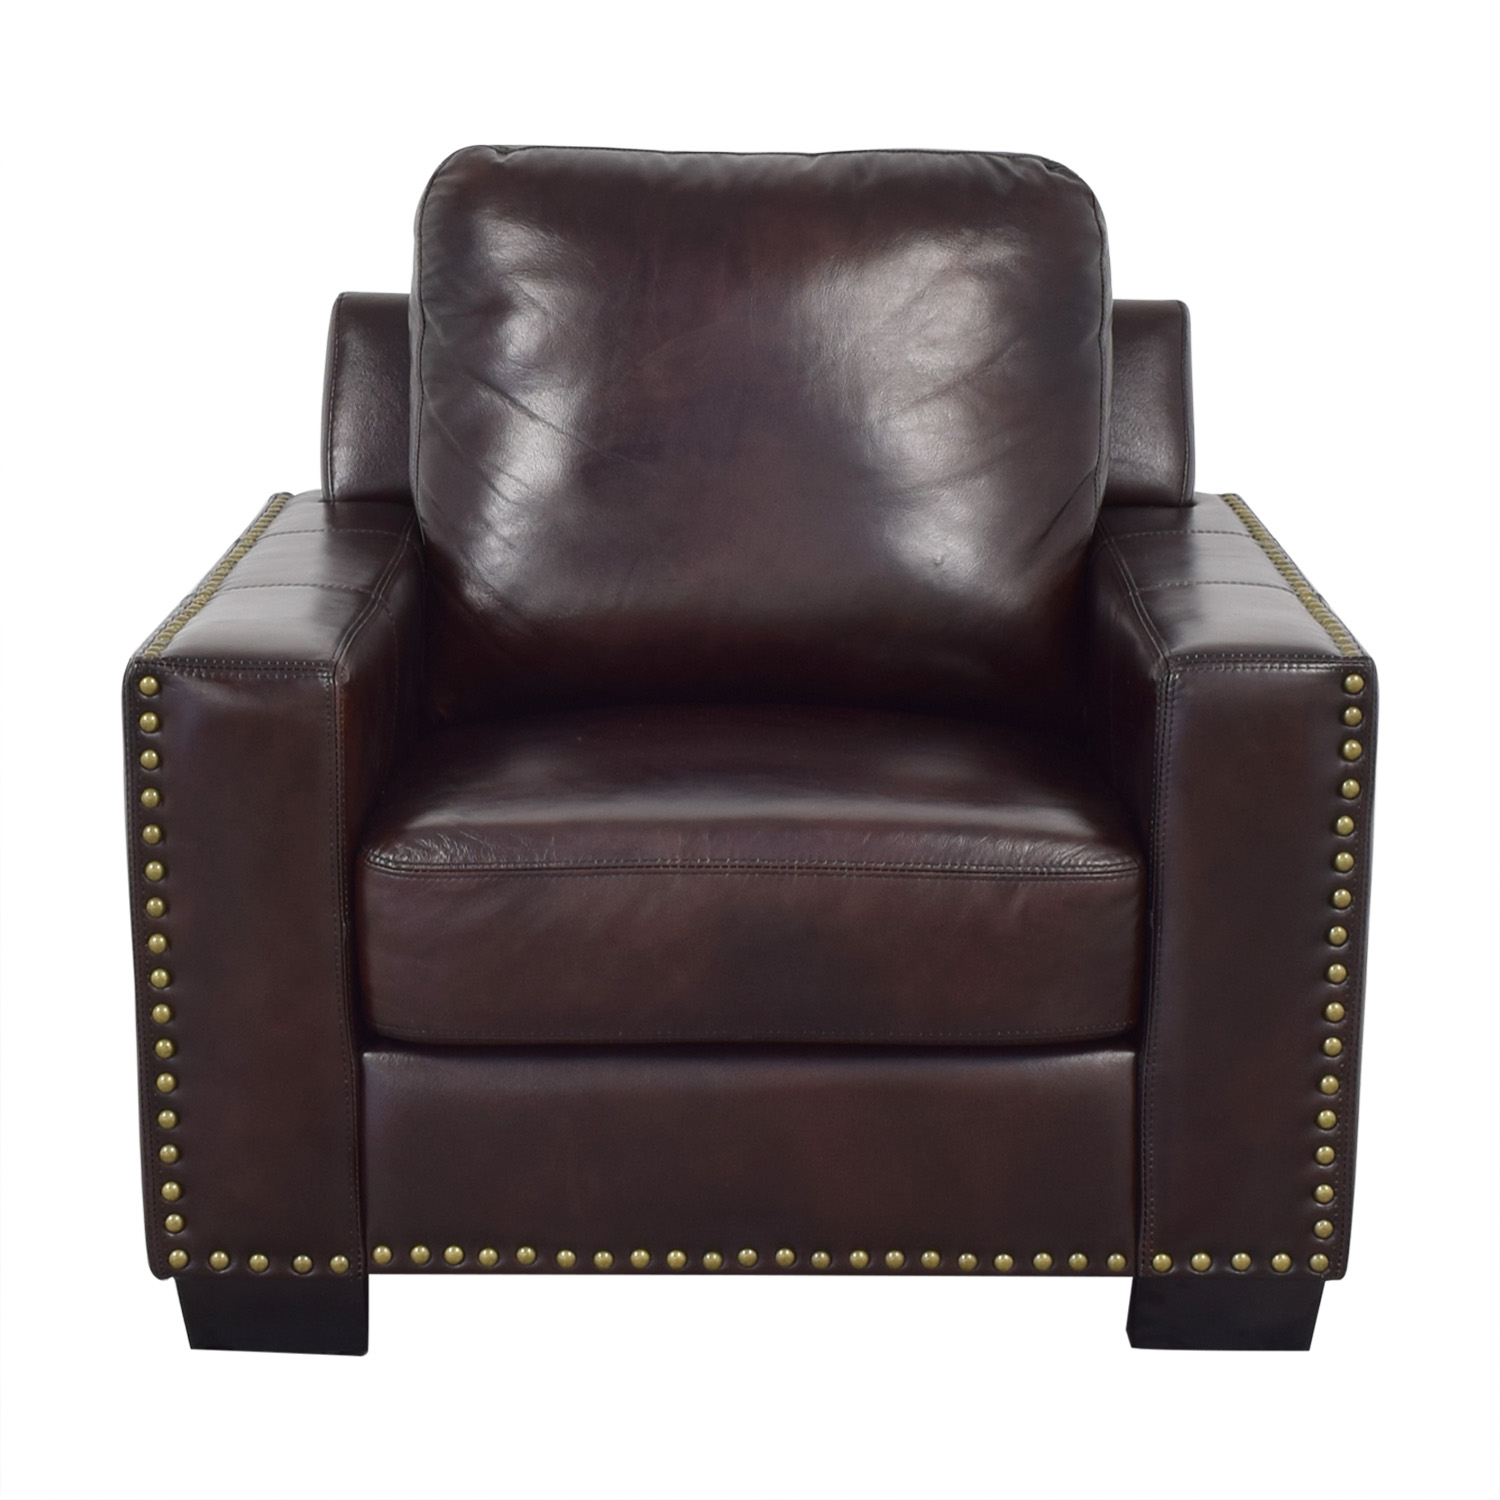 Abbyson Abbyson Monaco Leather Chair price